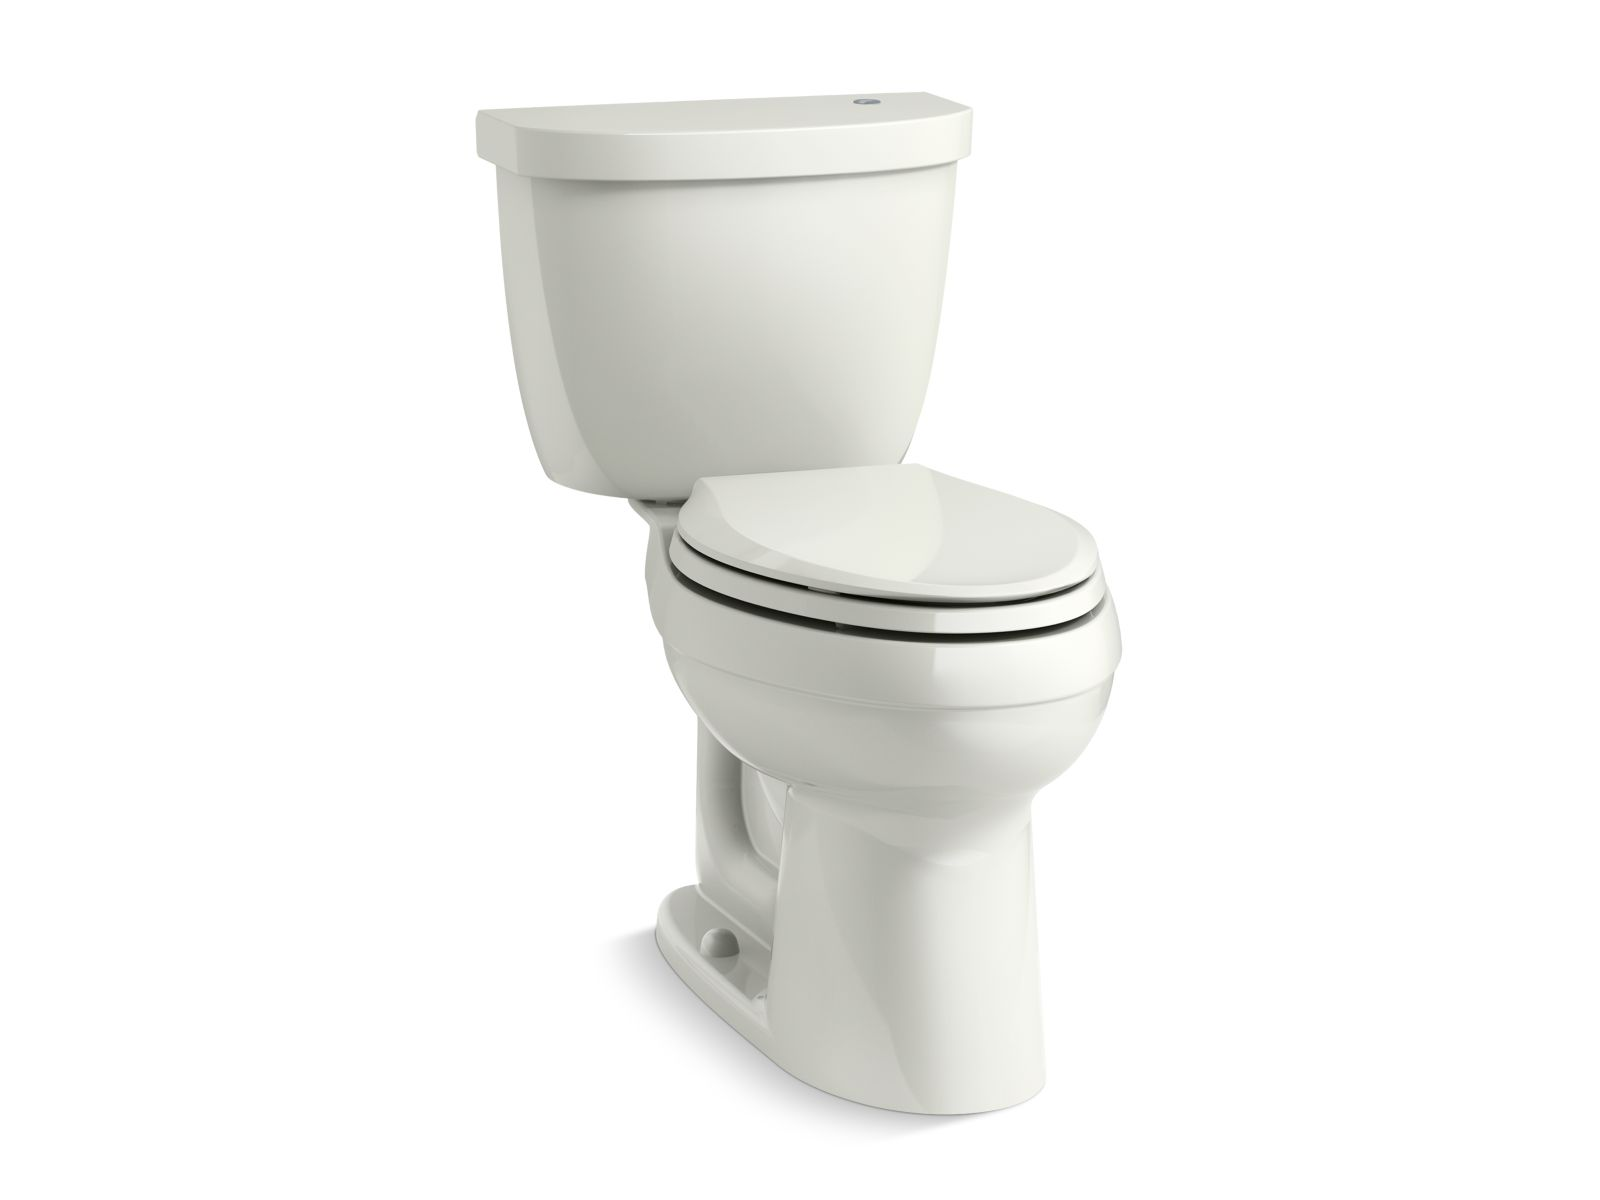 Kohler Cimarron® K-6418-NY Touchless Comfort Height® two-piece elongated 1.28 gpf toilet with AquaPiston® flushing technology Dune